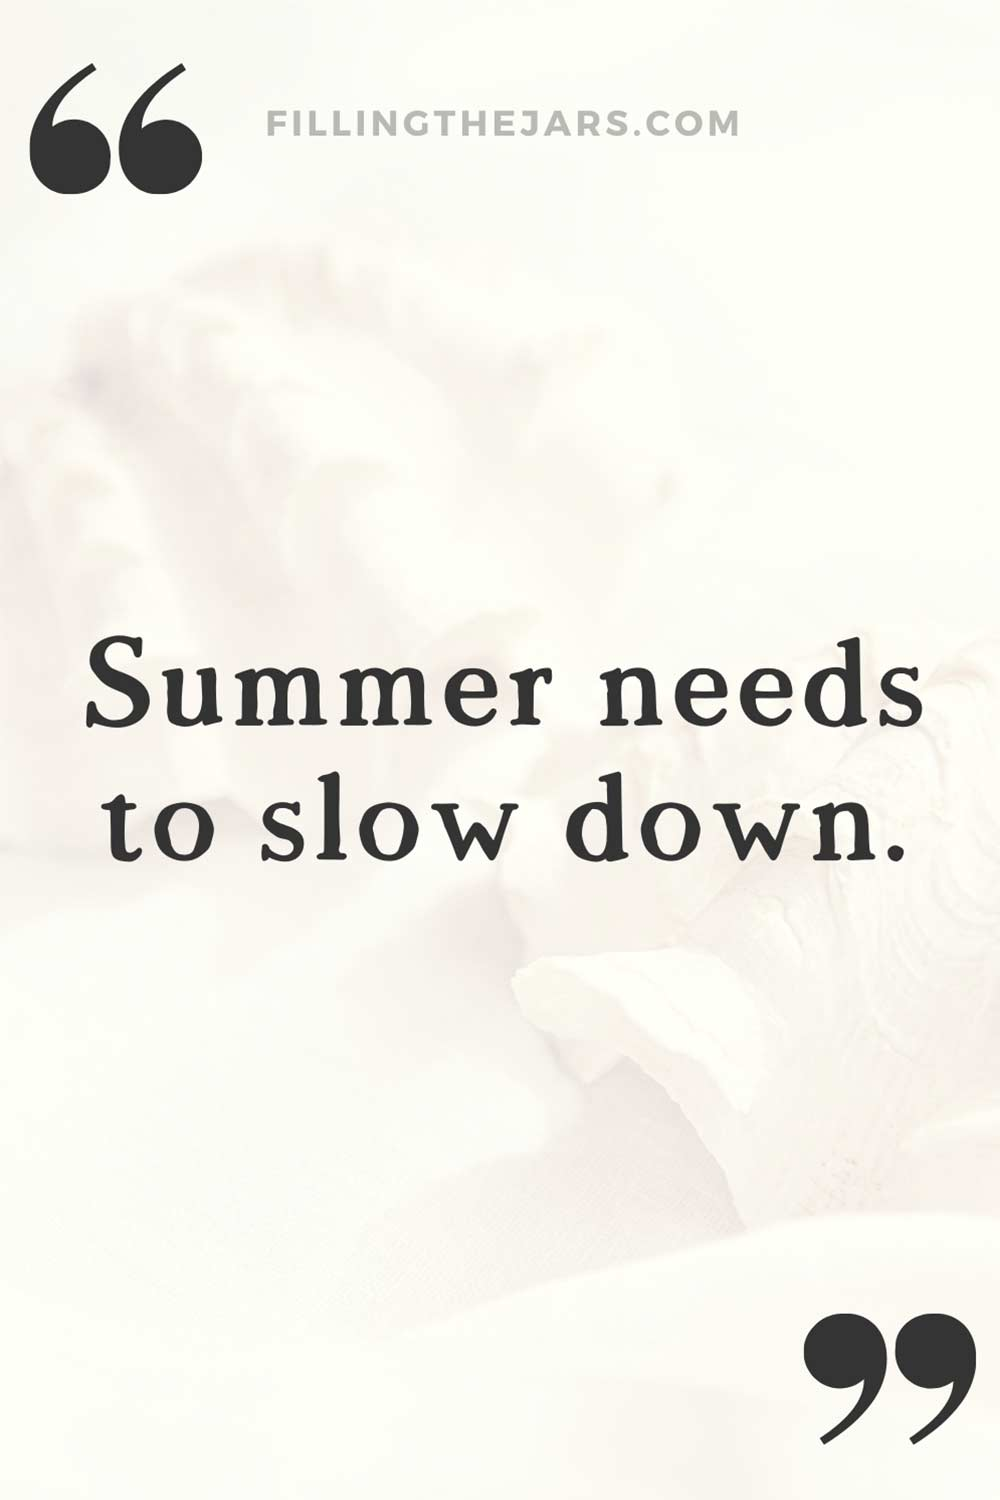 Summer needs to slow down text quote on whitewashed summer seashell background.